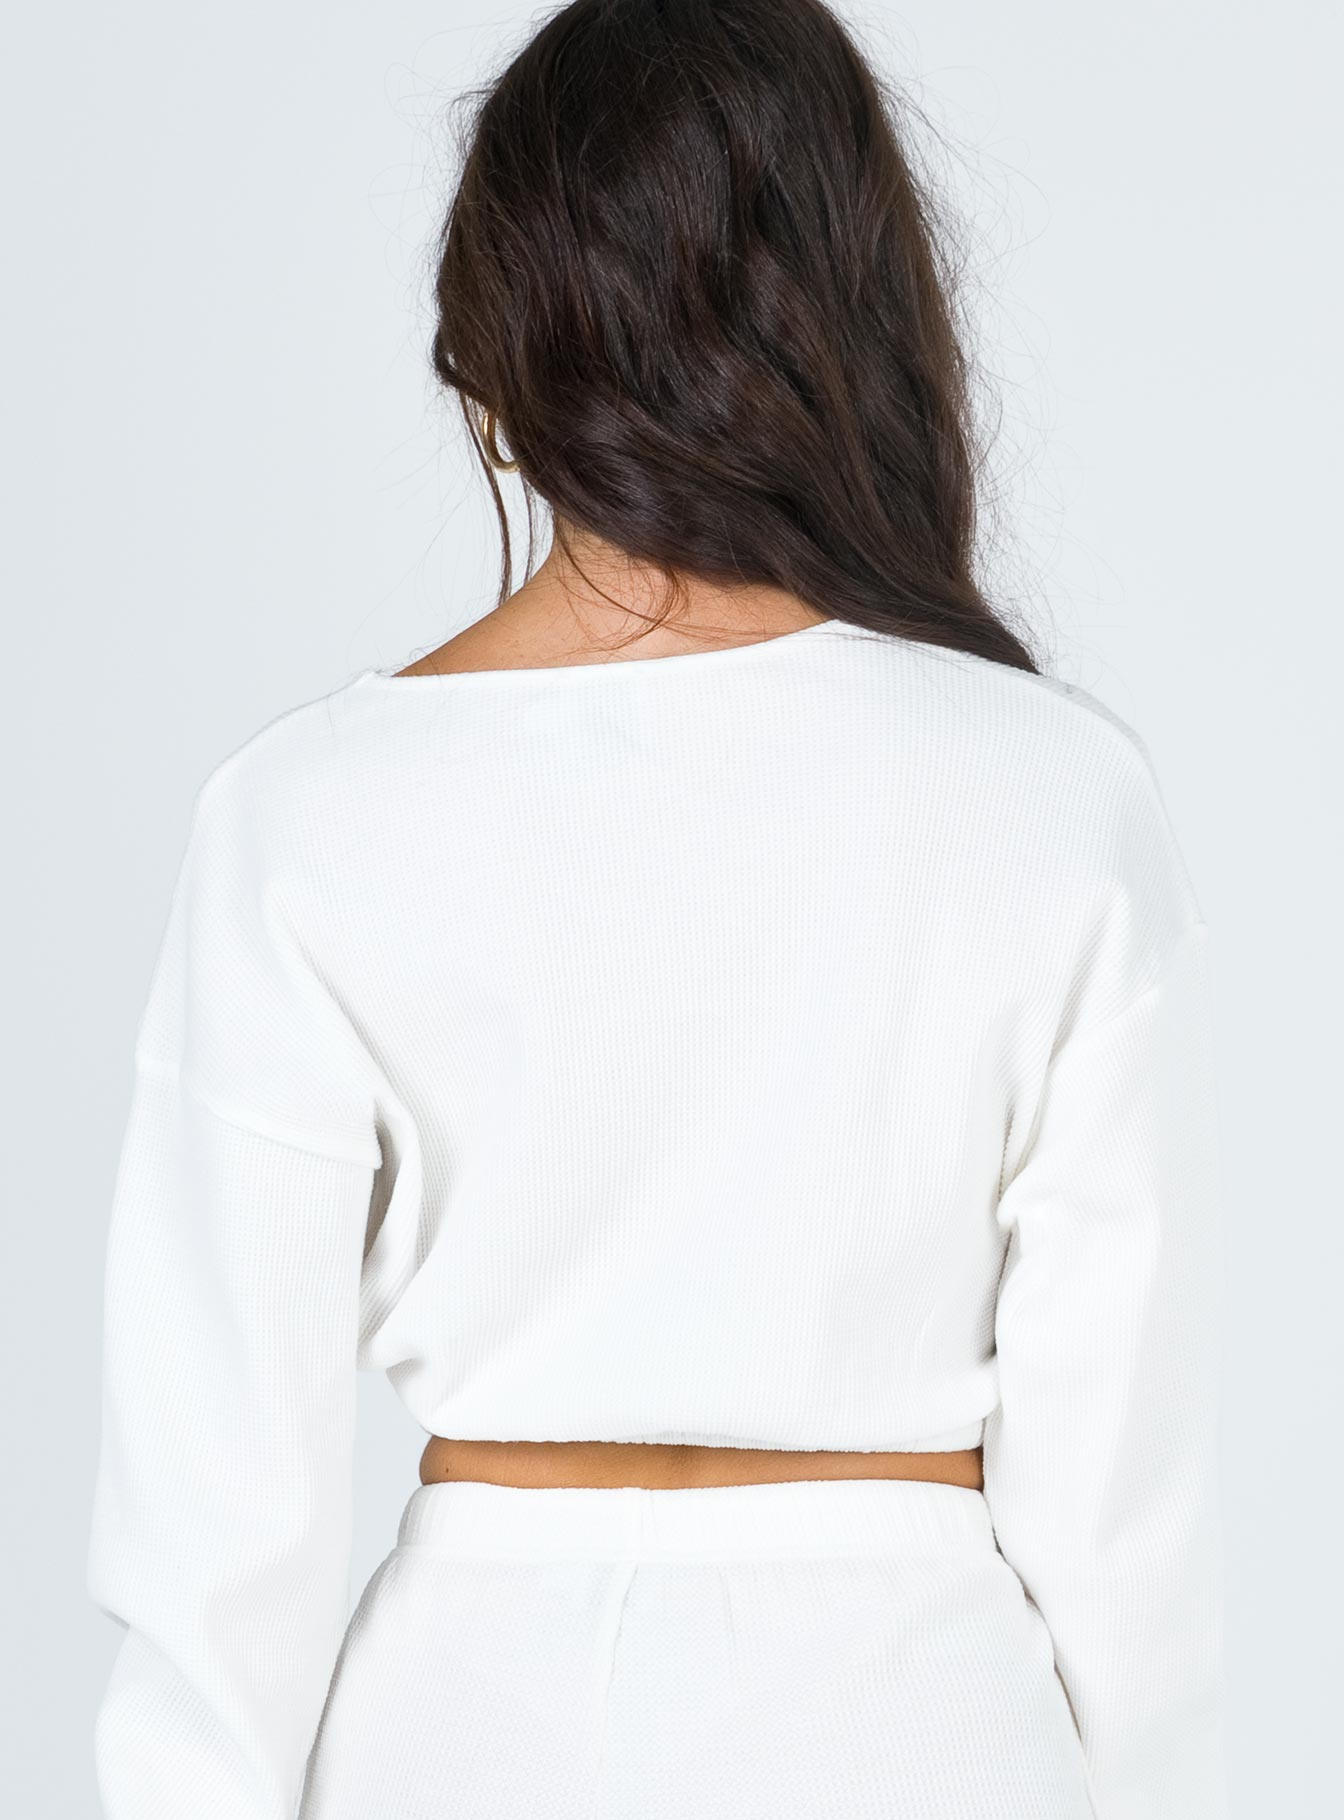 Milo Cropped Sweatshirt White